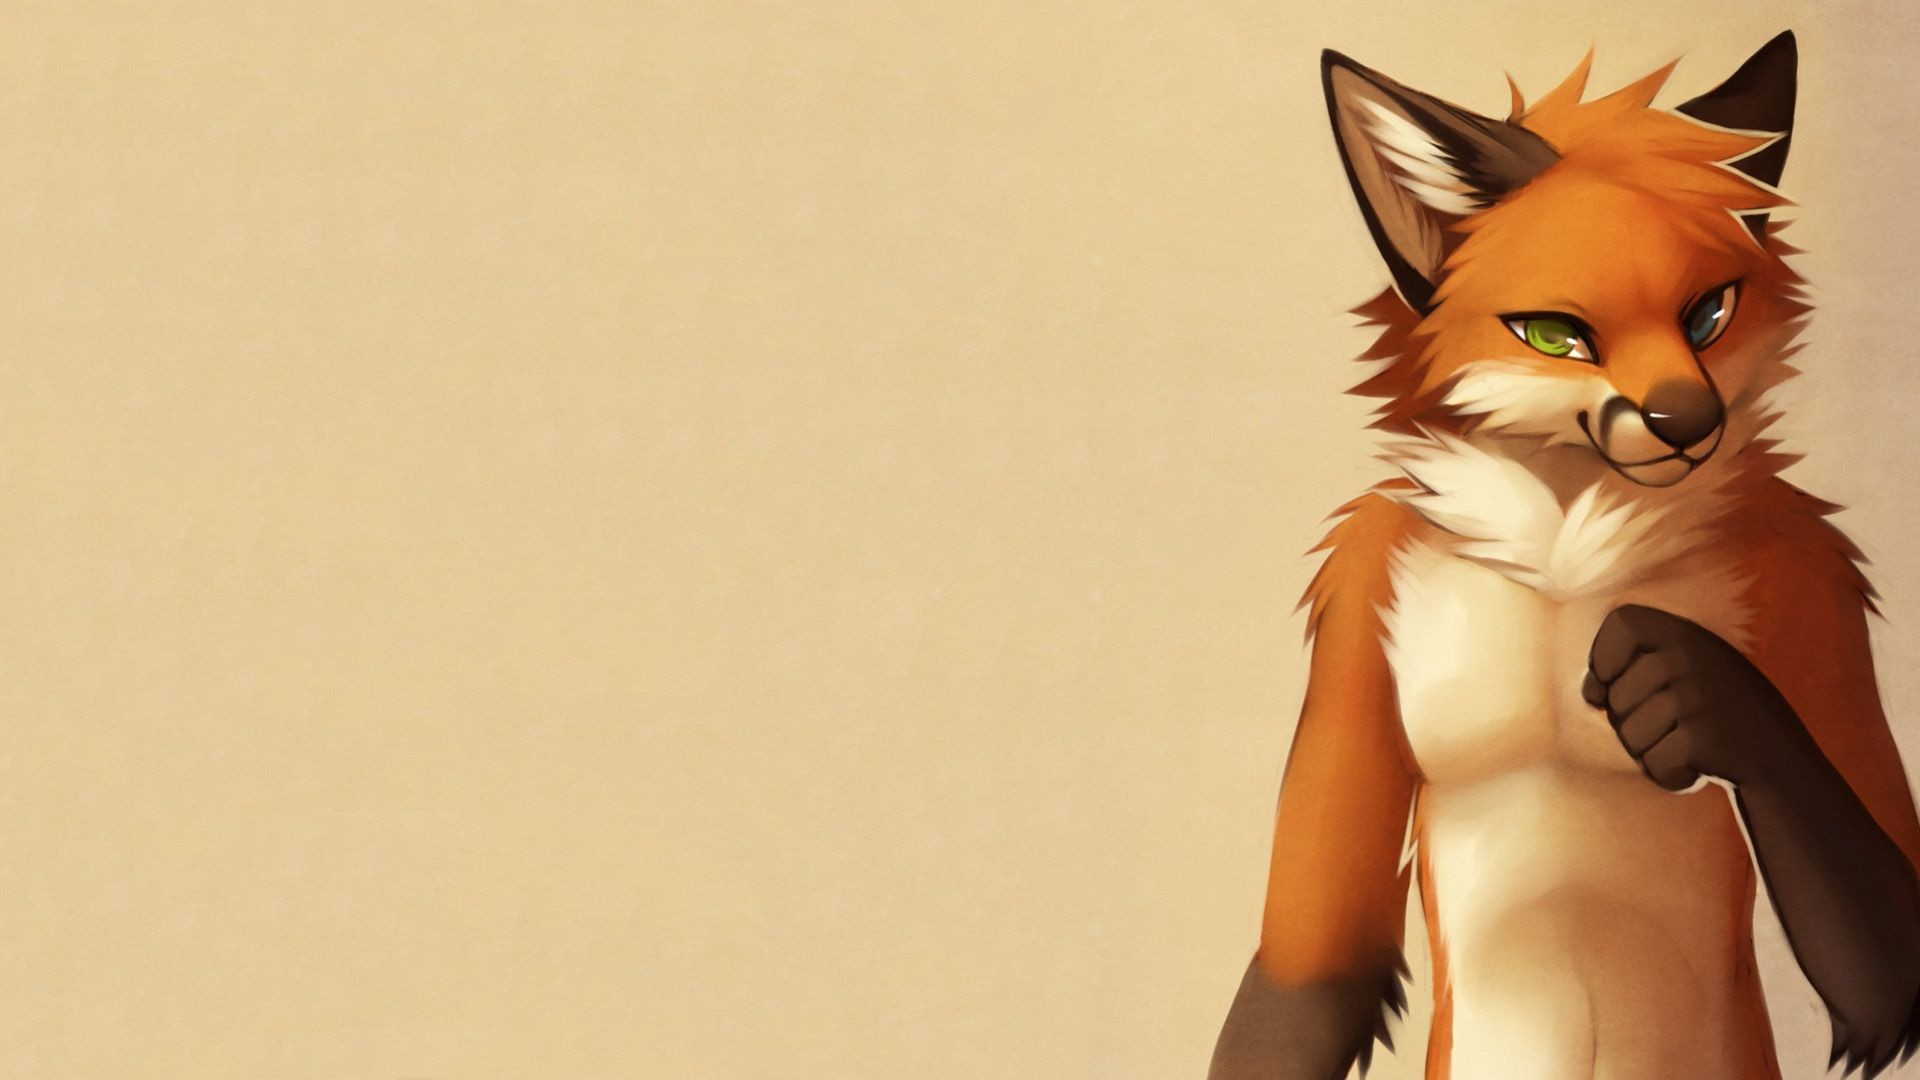 Res: 1920x1080, Furry Wallpapers Part Album on Imgur